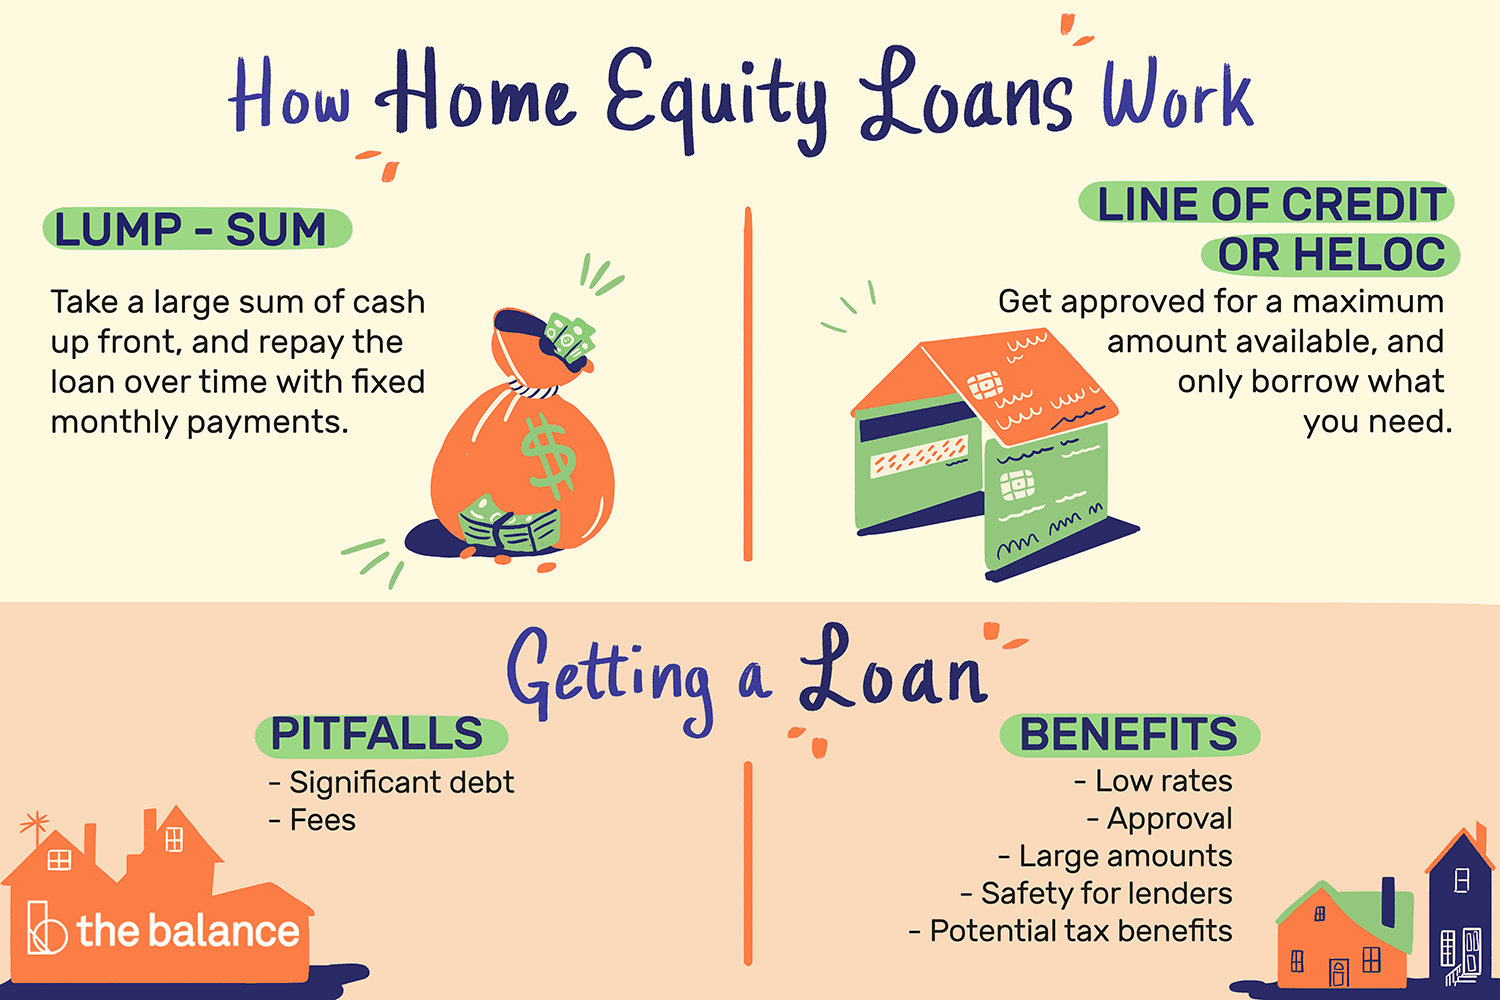 can i get a home equity loan after bankruptcy